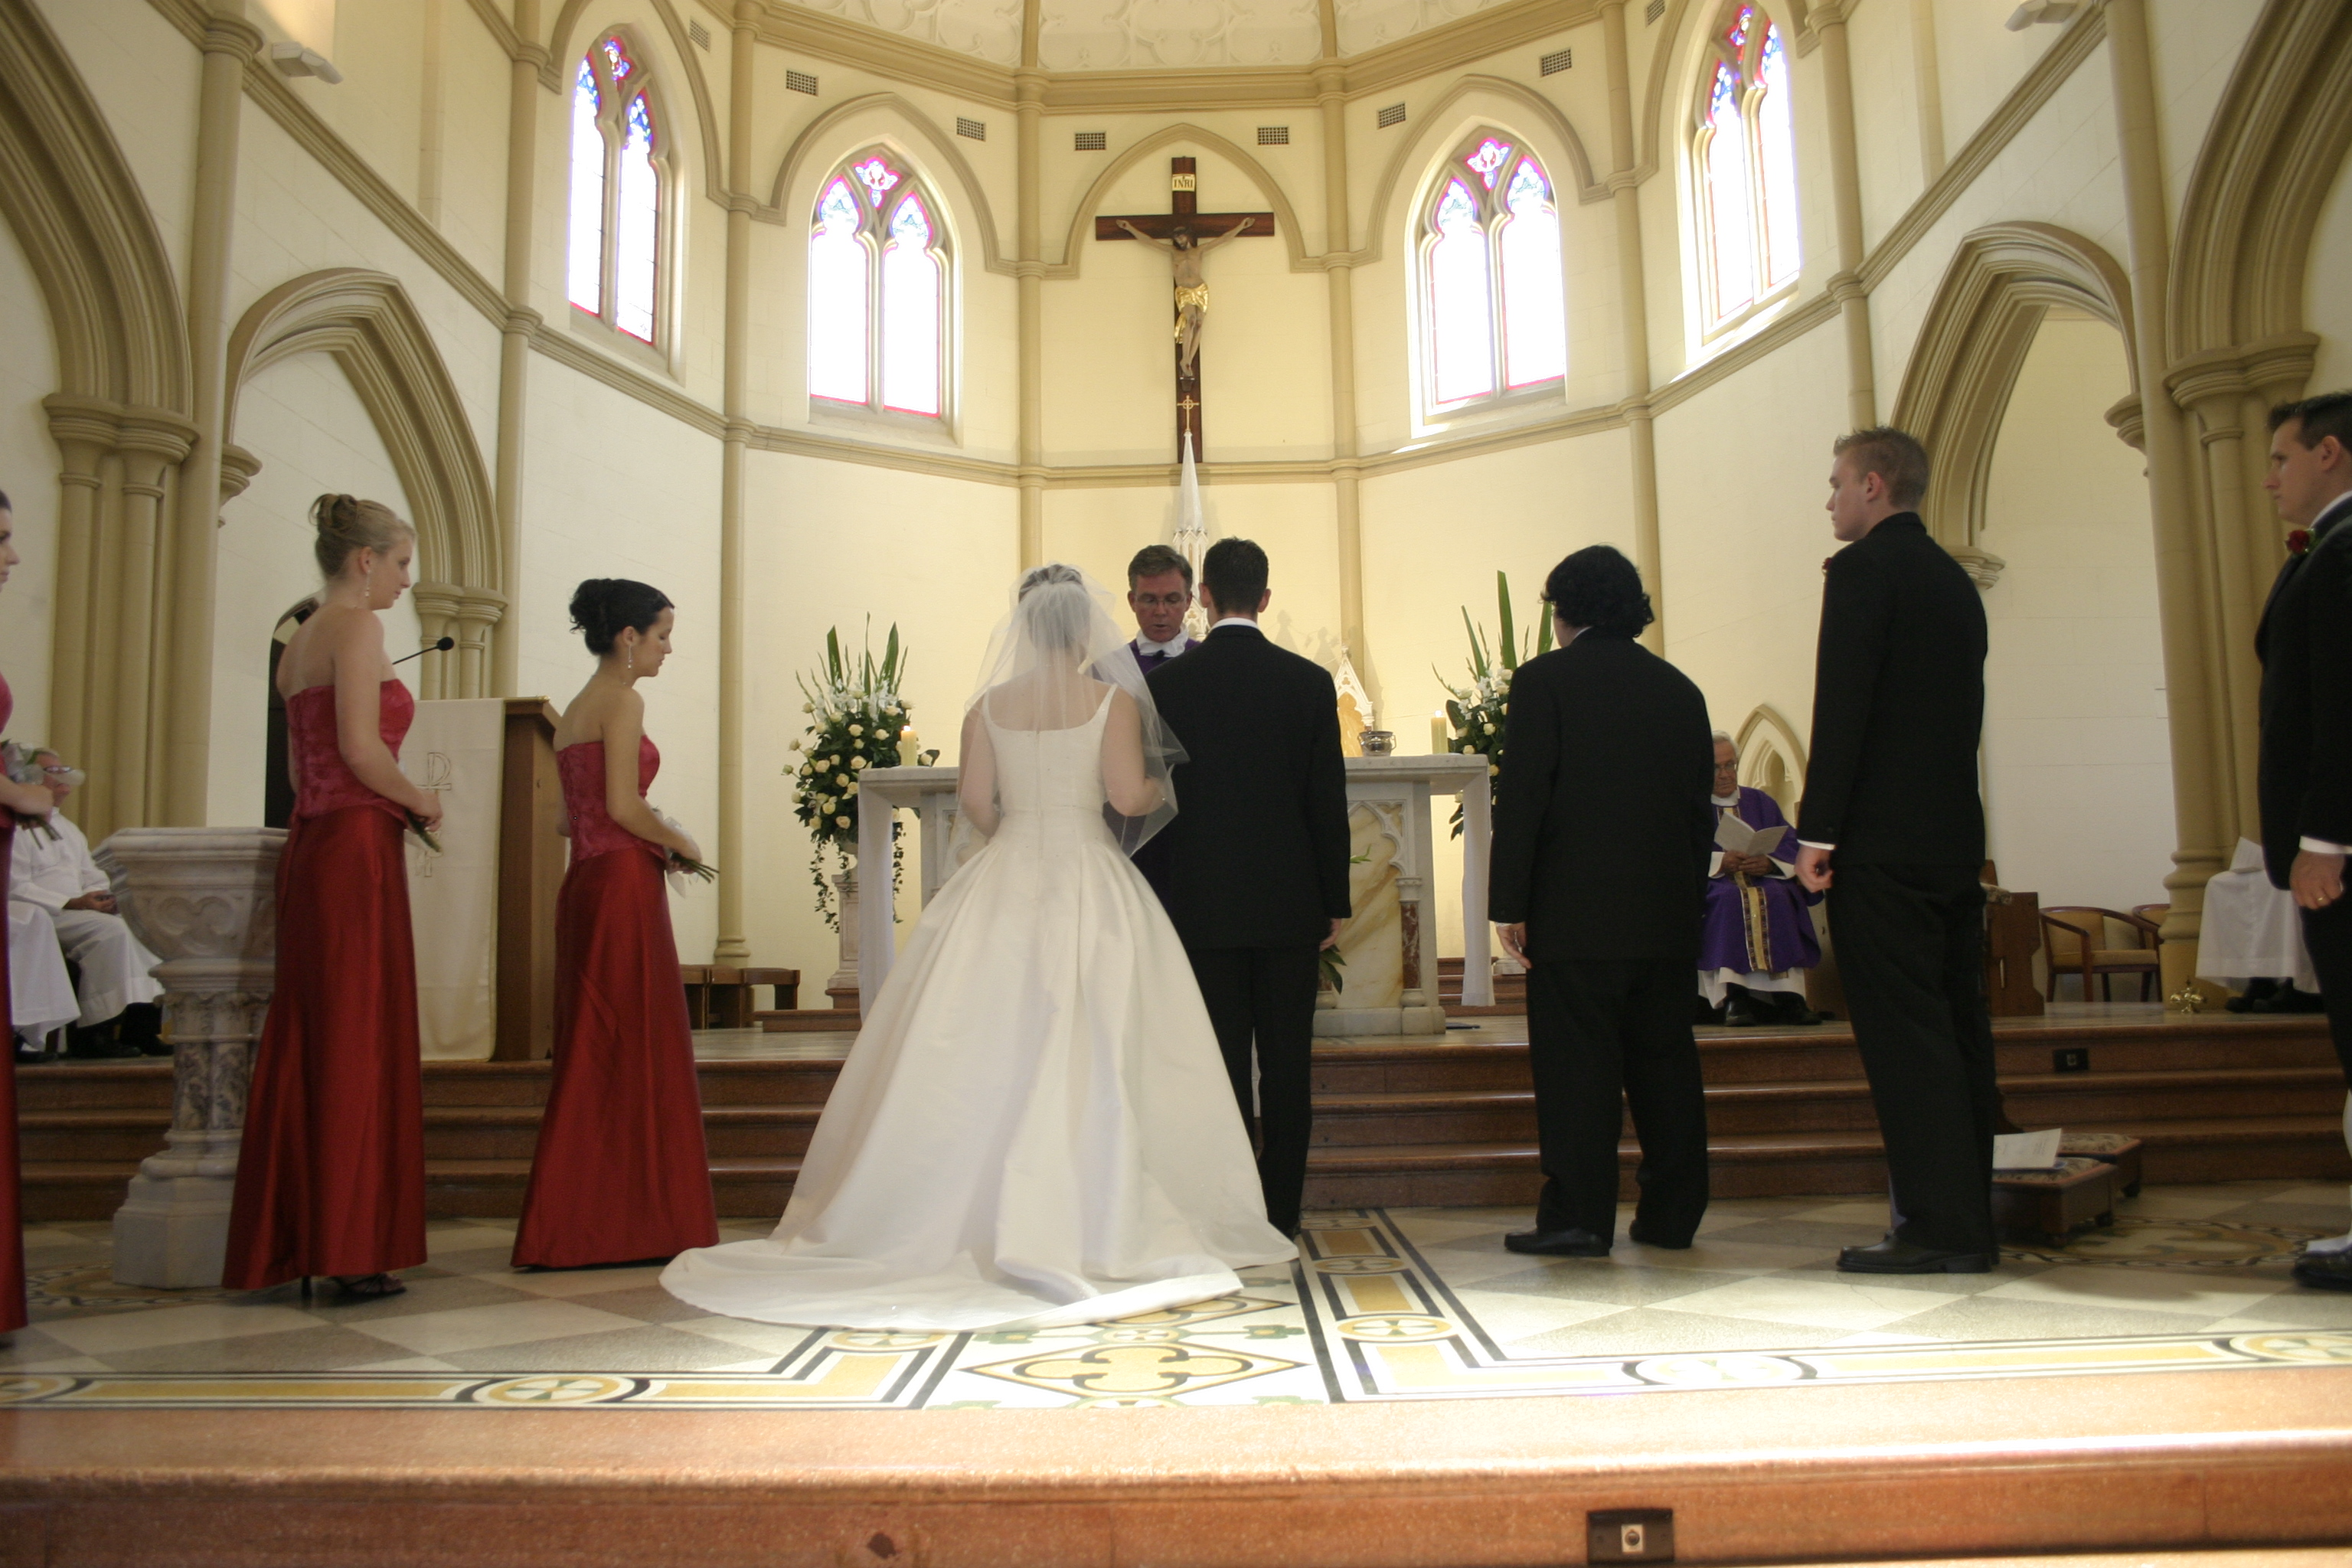 Vocation to marriage